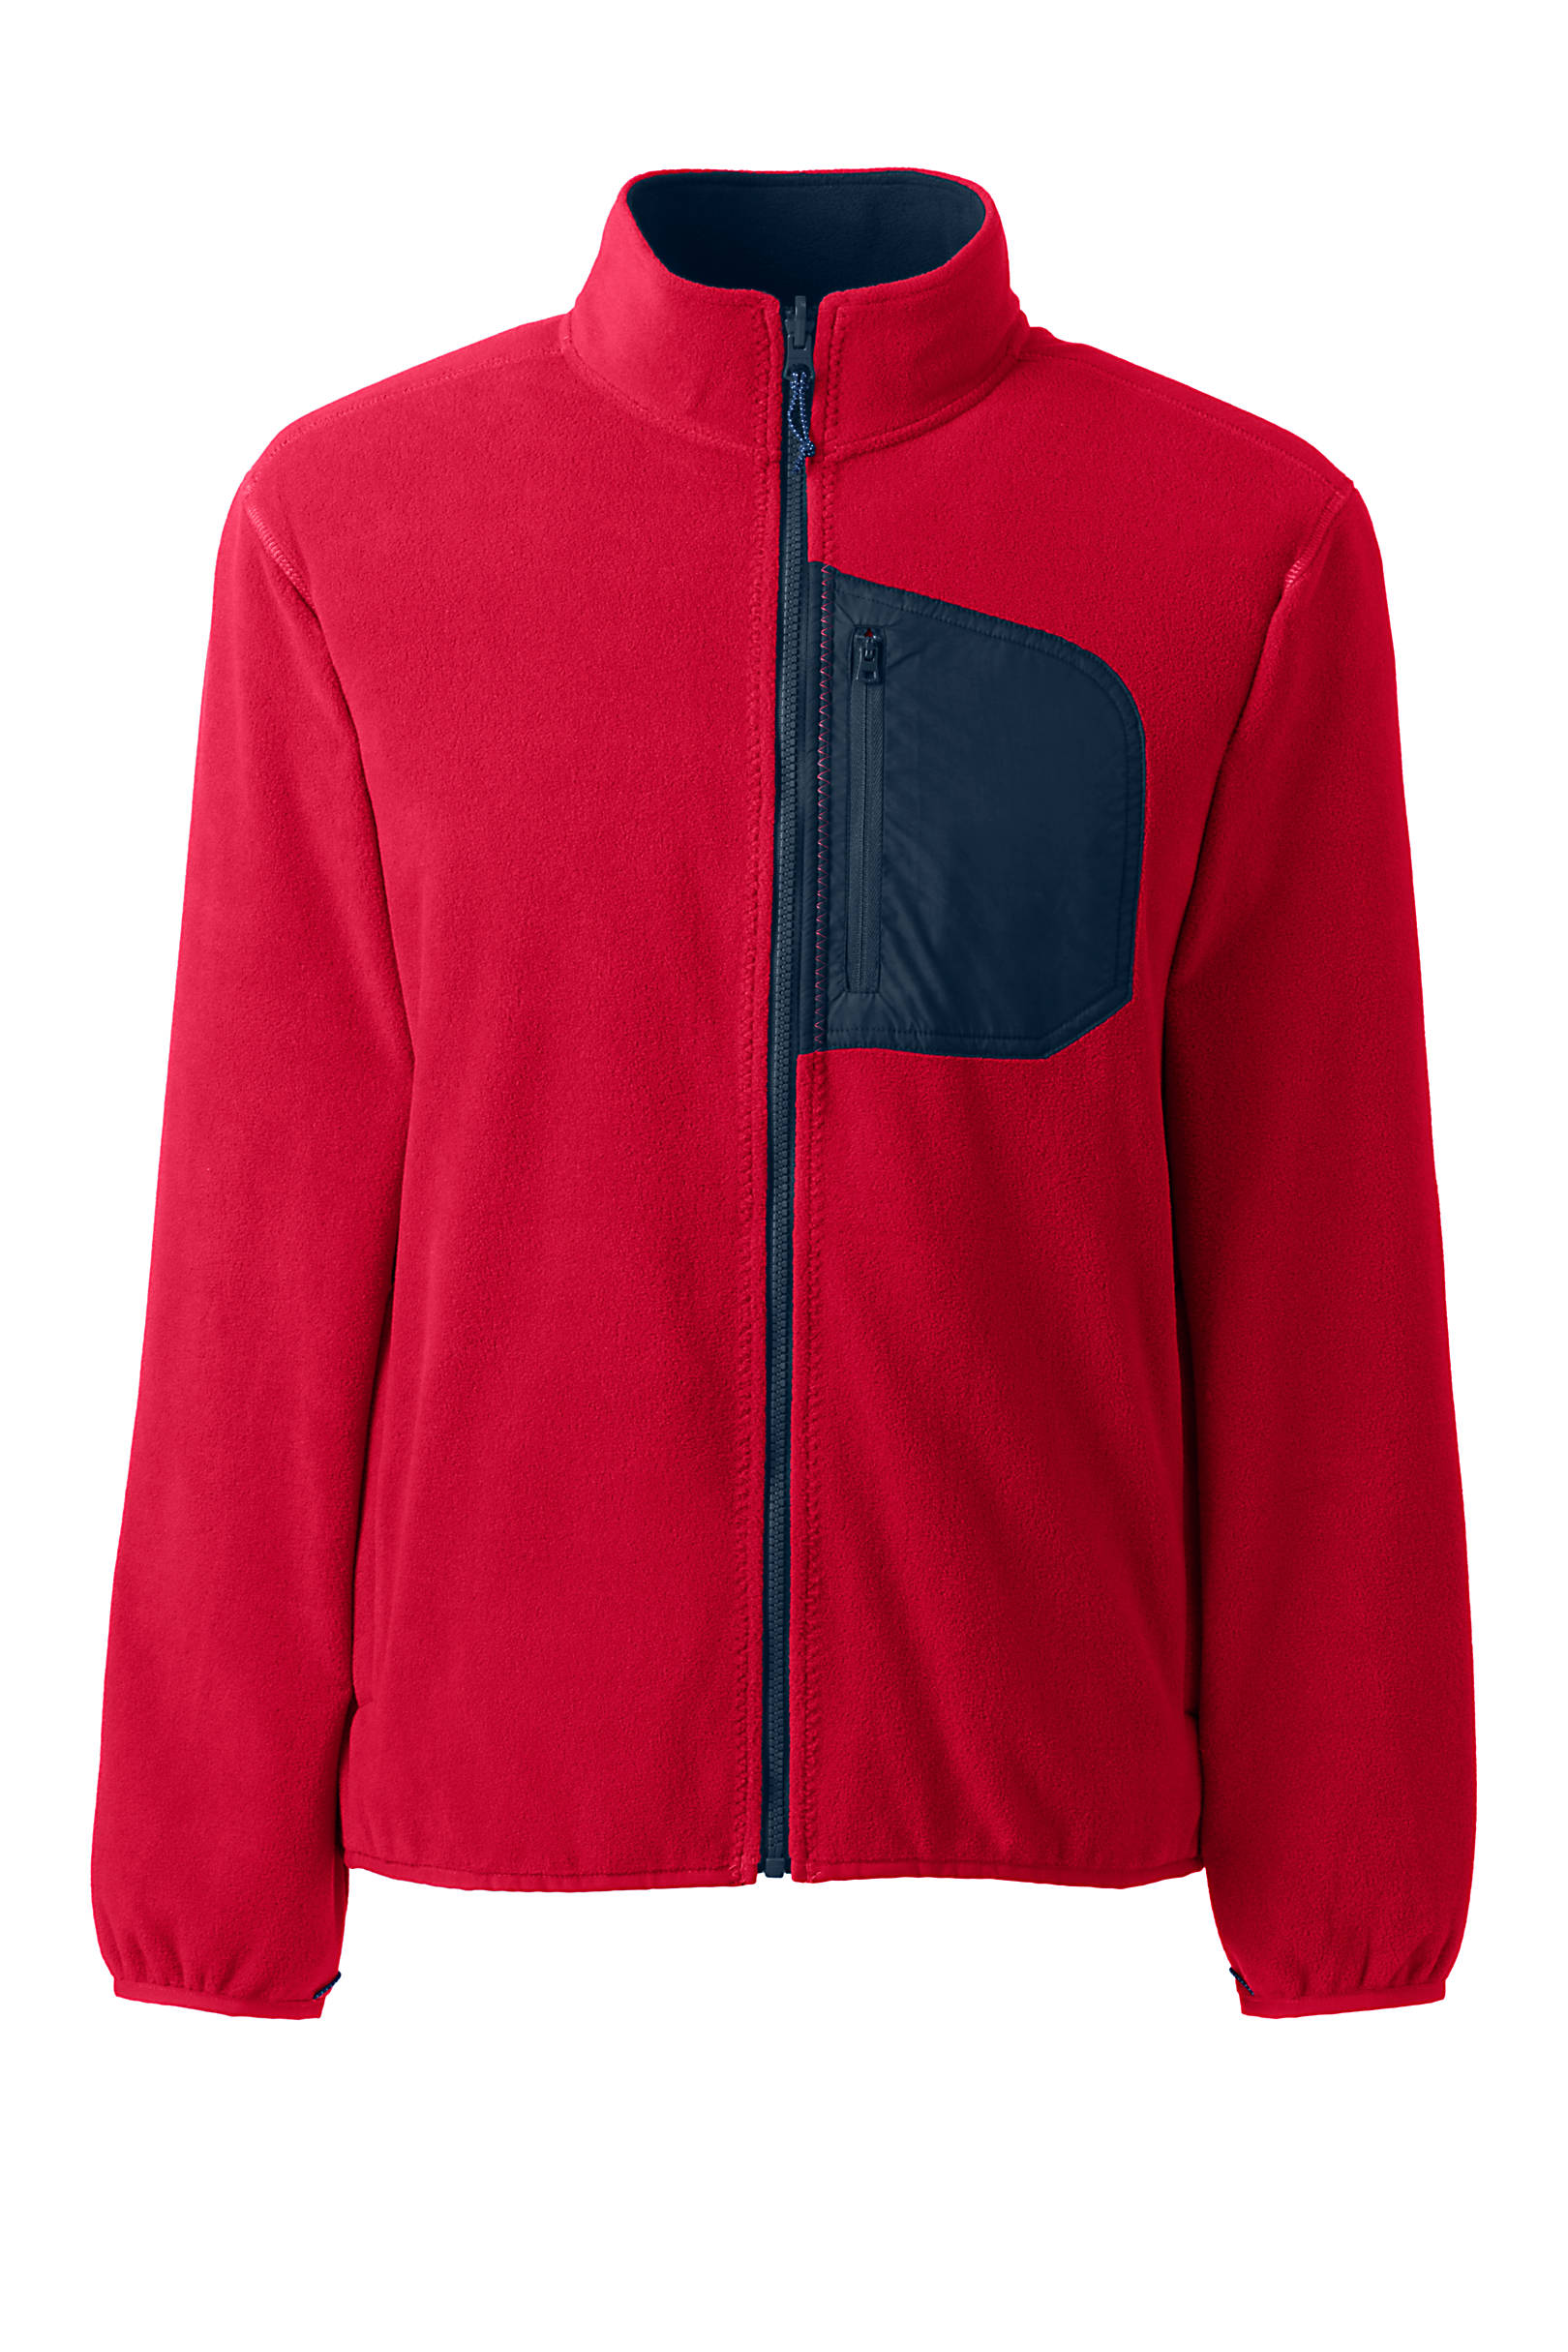 Lands' End Men's Thermacheck 200 Fleece Jacket (various colors/sizes)